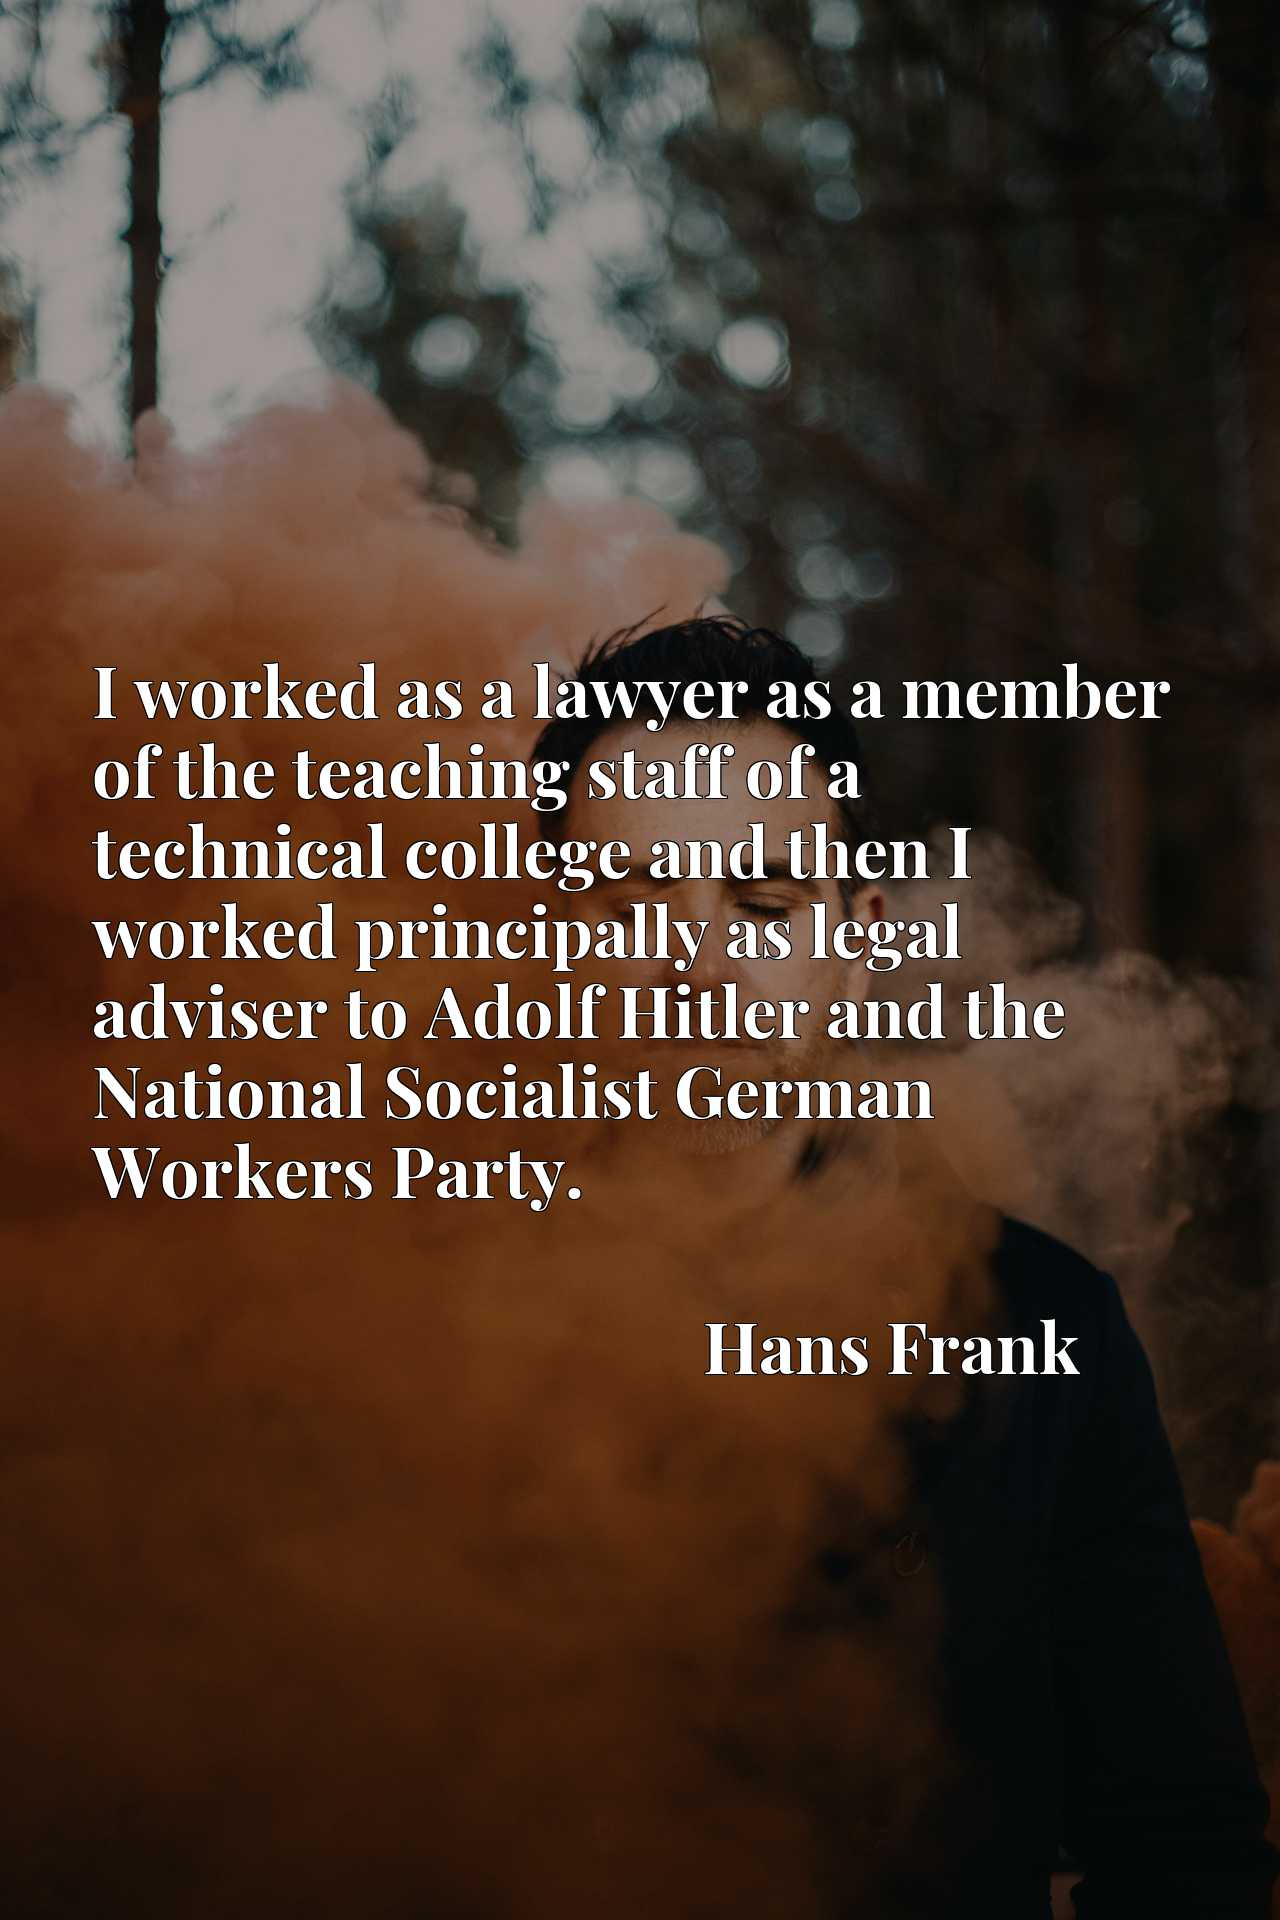 I worked as a lawyer as a member of the teaching staff of a technical college and then I worked principally as legal adviser to Adolf Hitler and the National Socialist German Workers Party.